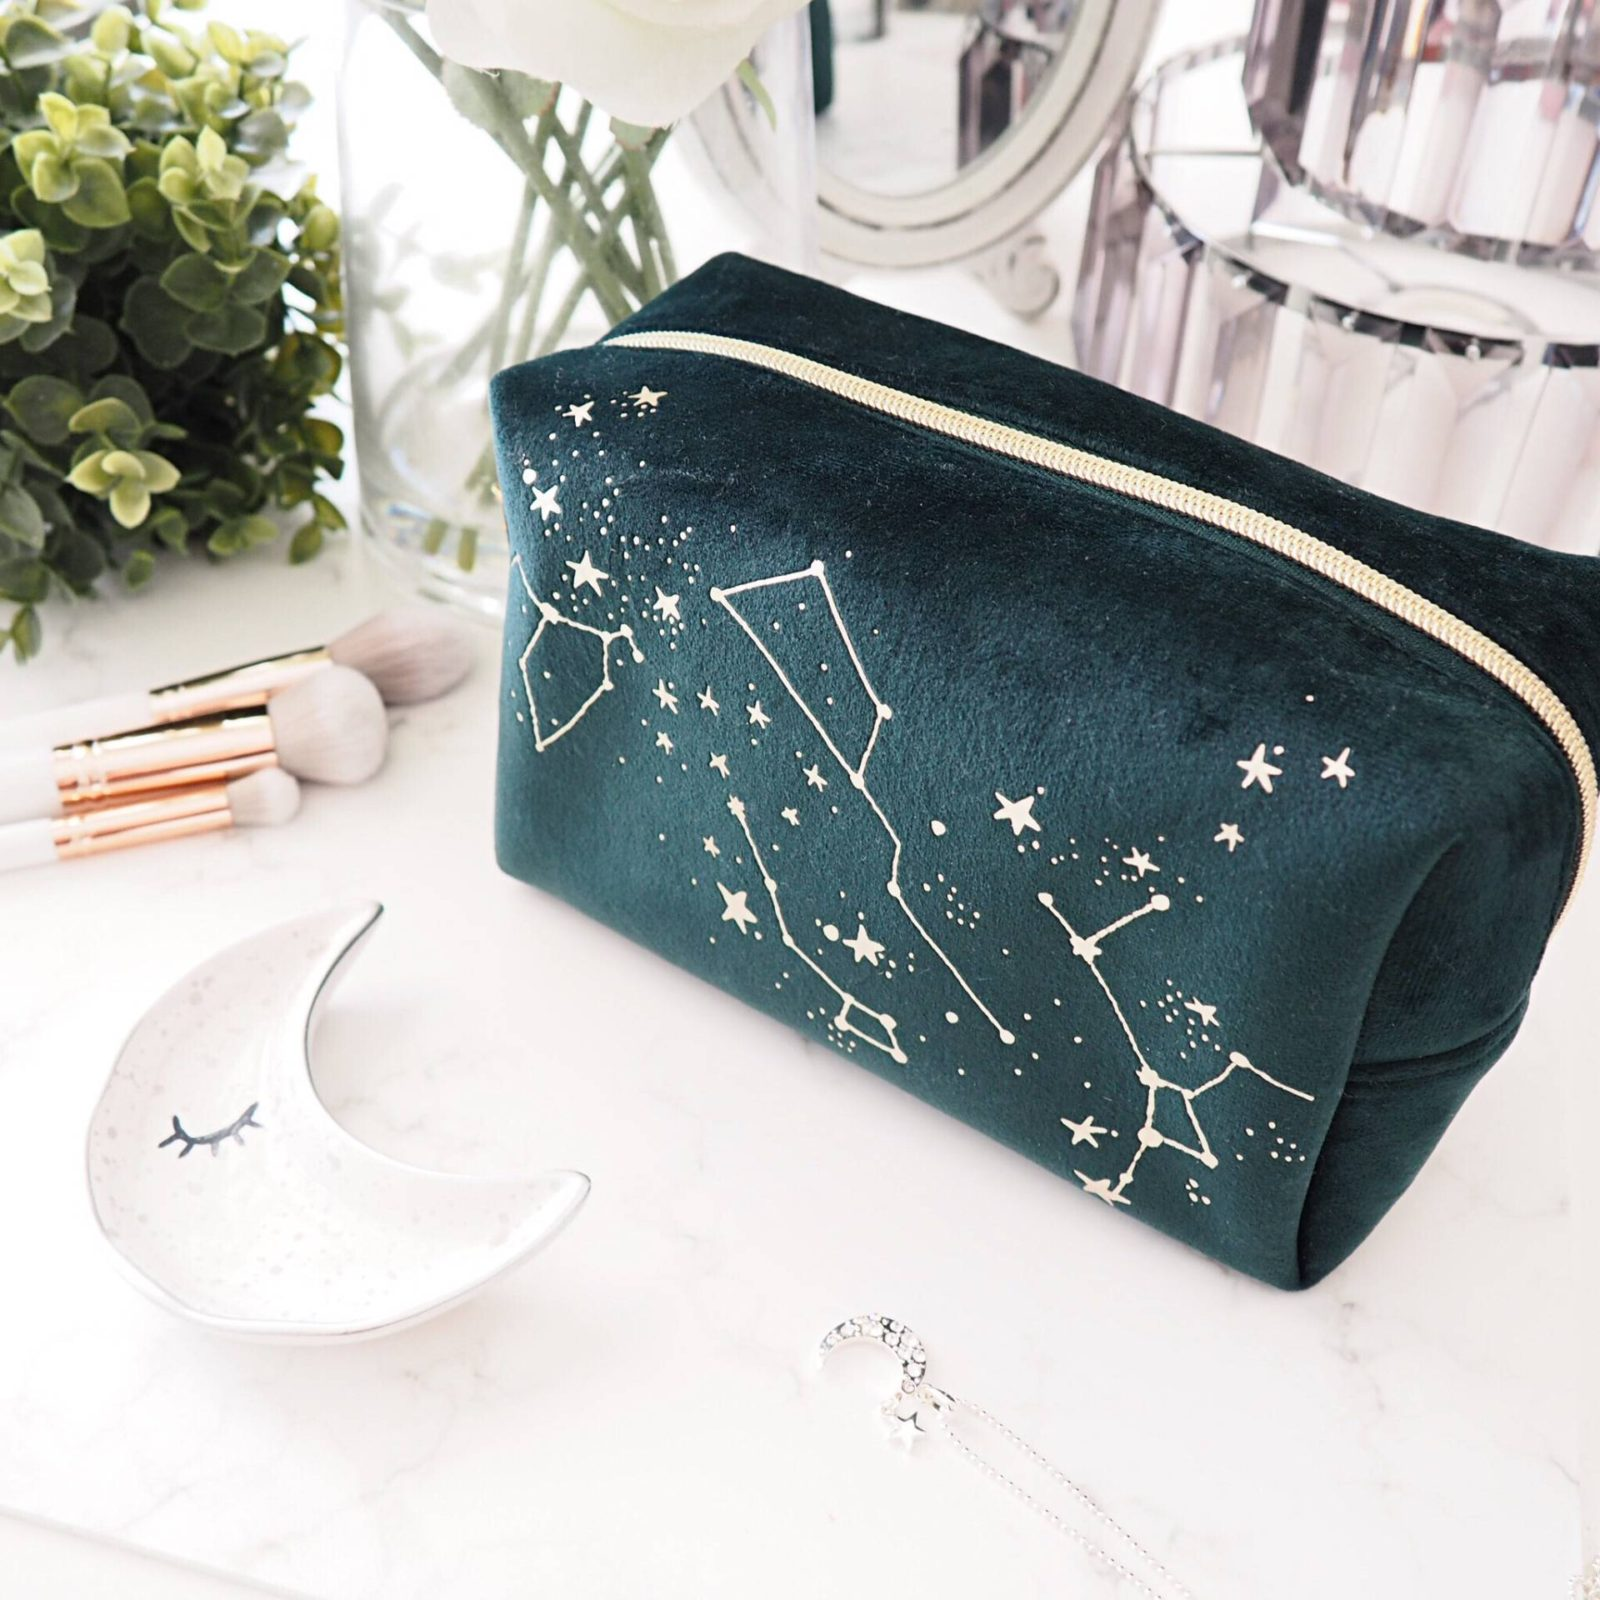 Oliver Bonas Star Makeup Pouch